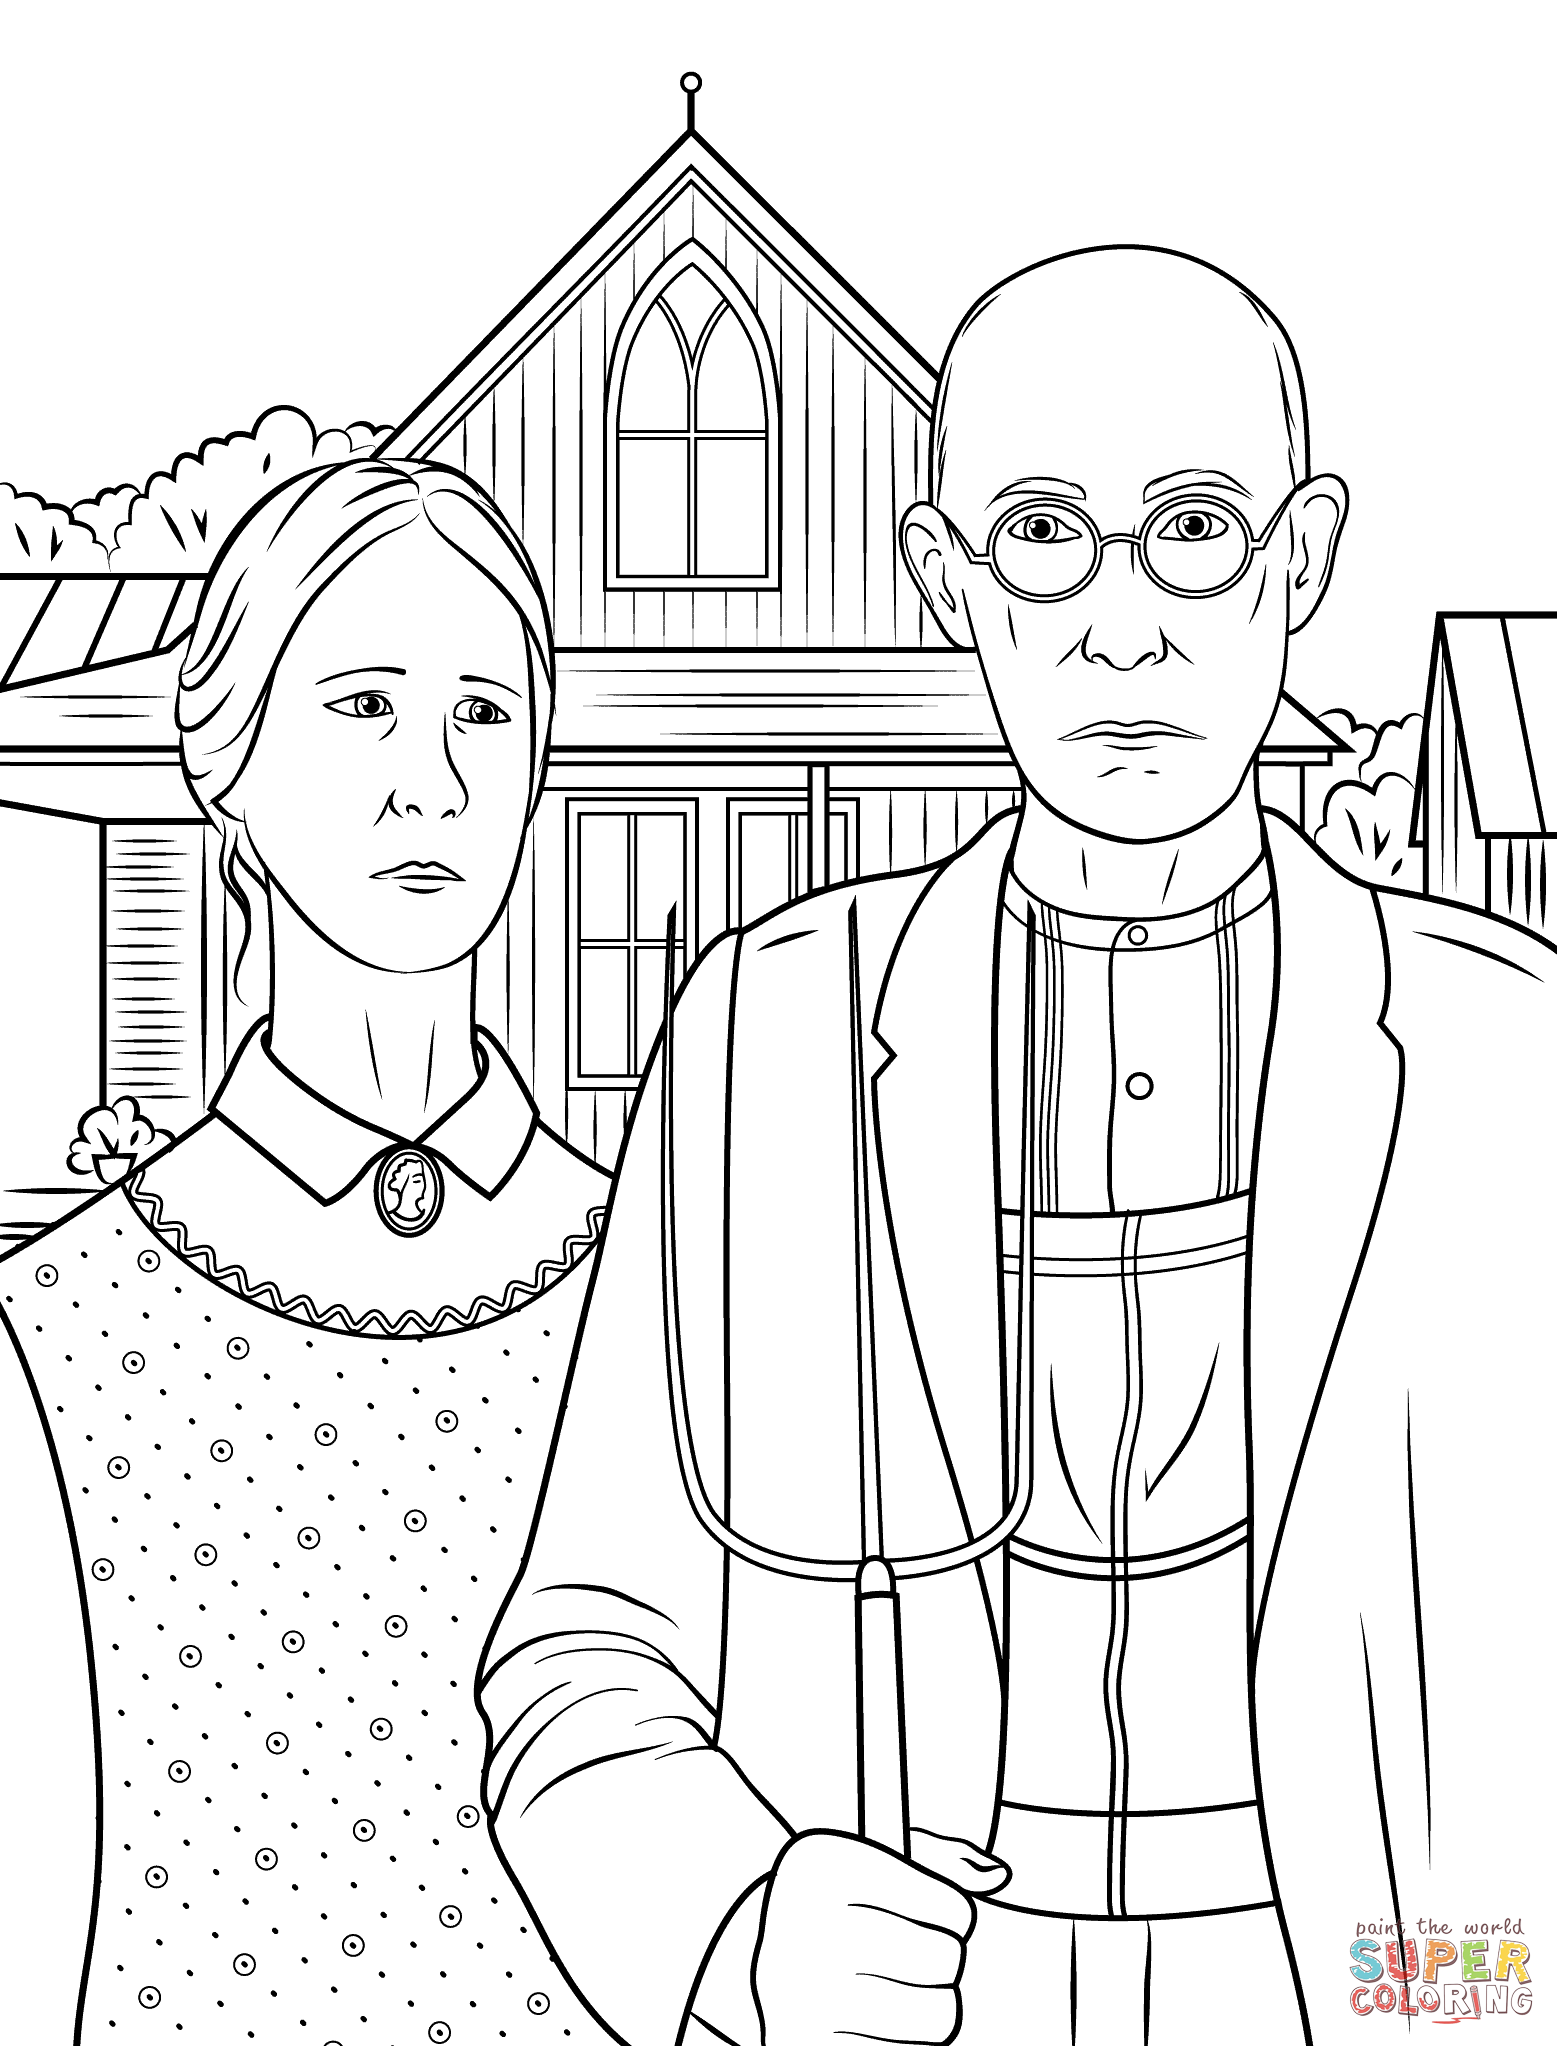 famous artists coloring pages gothic coloring download gothic coloring for free 2019 artists famous pages coloring